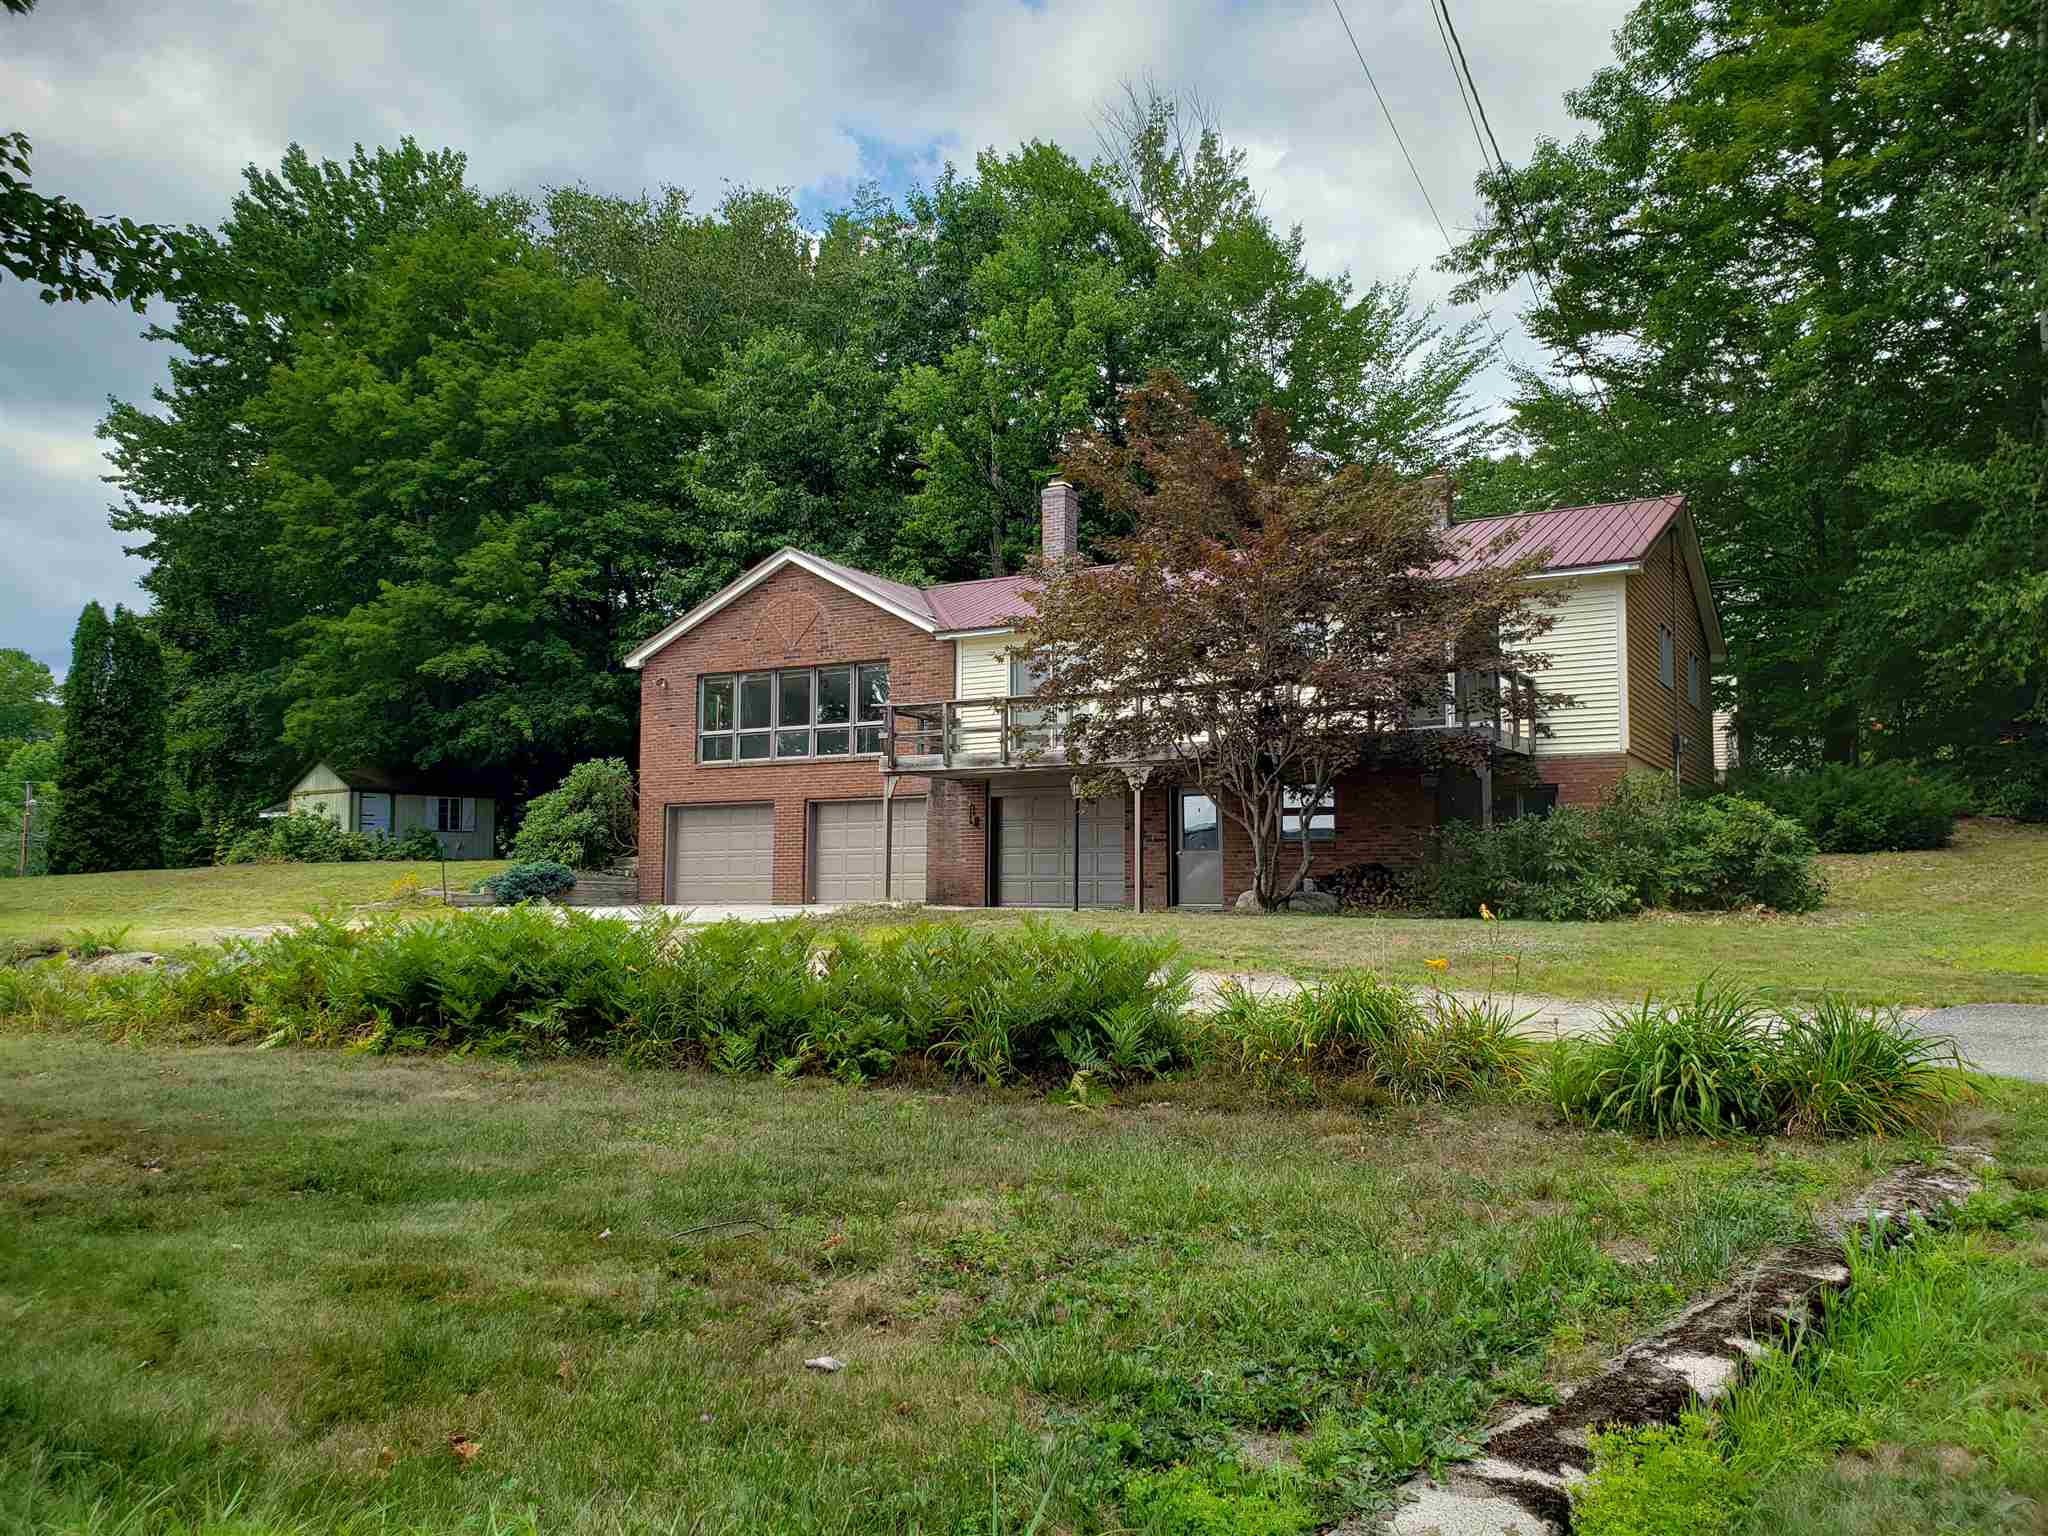 MLS 4822875: 5 Valley View Lane, Lincoln NH